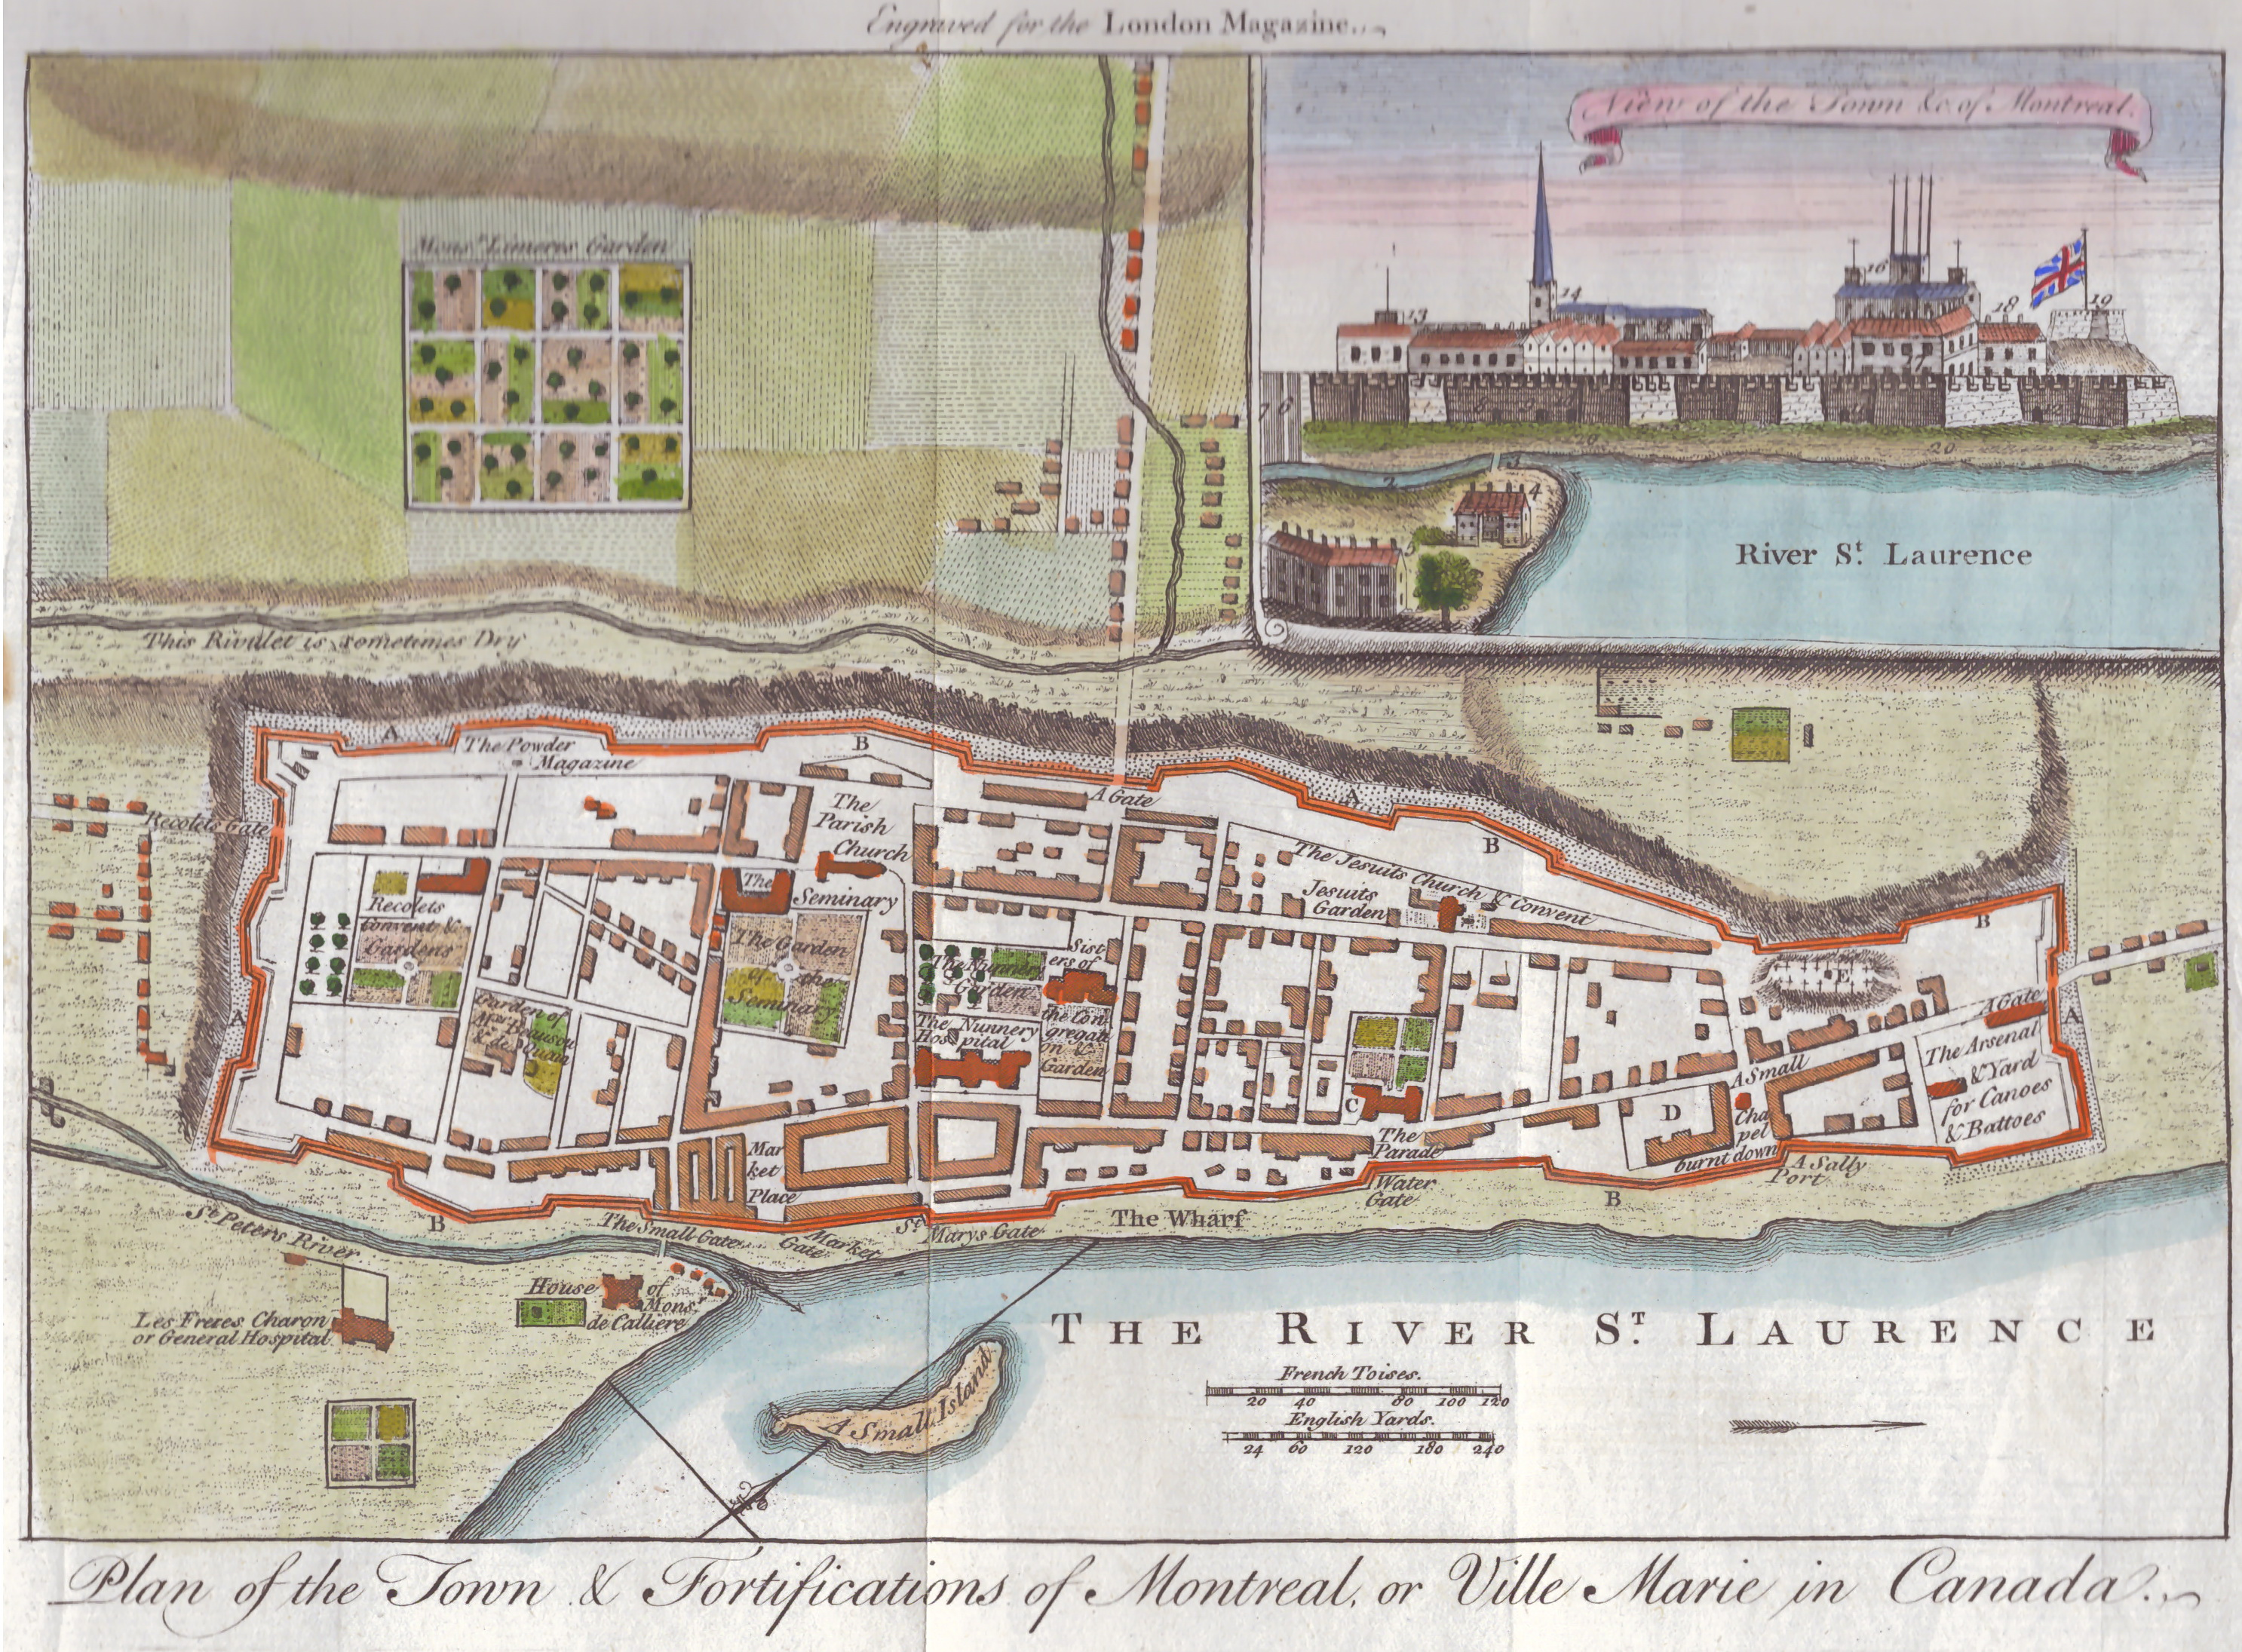 The 1760 map was published in a British periodical, London Magazine, just a month after the surrender of Montreal in September 1760. The slightly exaggerated inset view of Montreal shows how it was more or less impossible to defend the city since it was on a hill inside the fortifications. Many of the streets remain much the same today. Photos courtesy of David Chandler and Stanley Sklar.